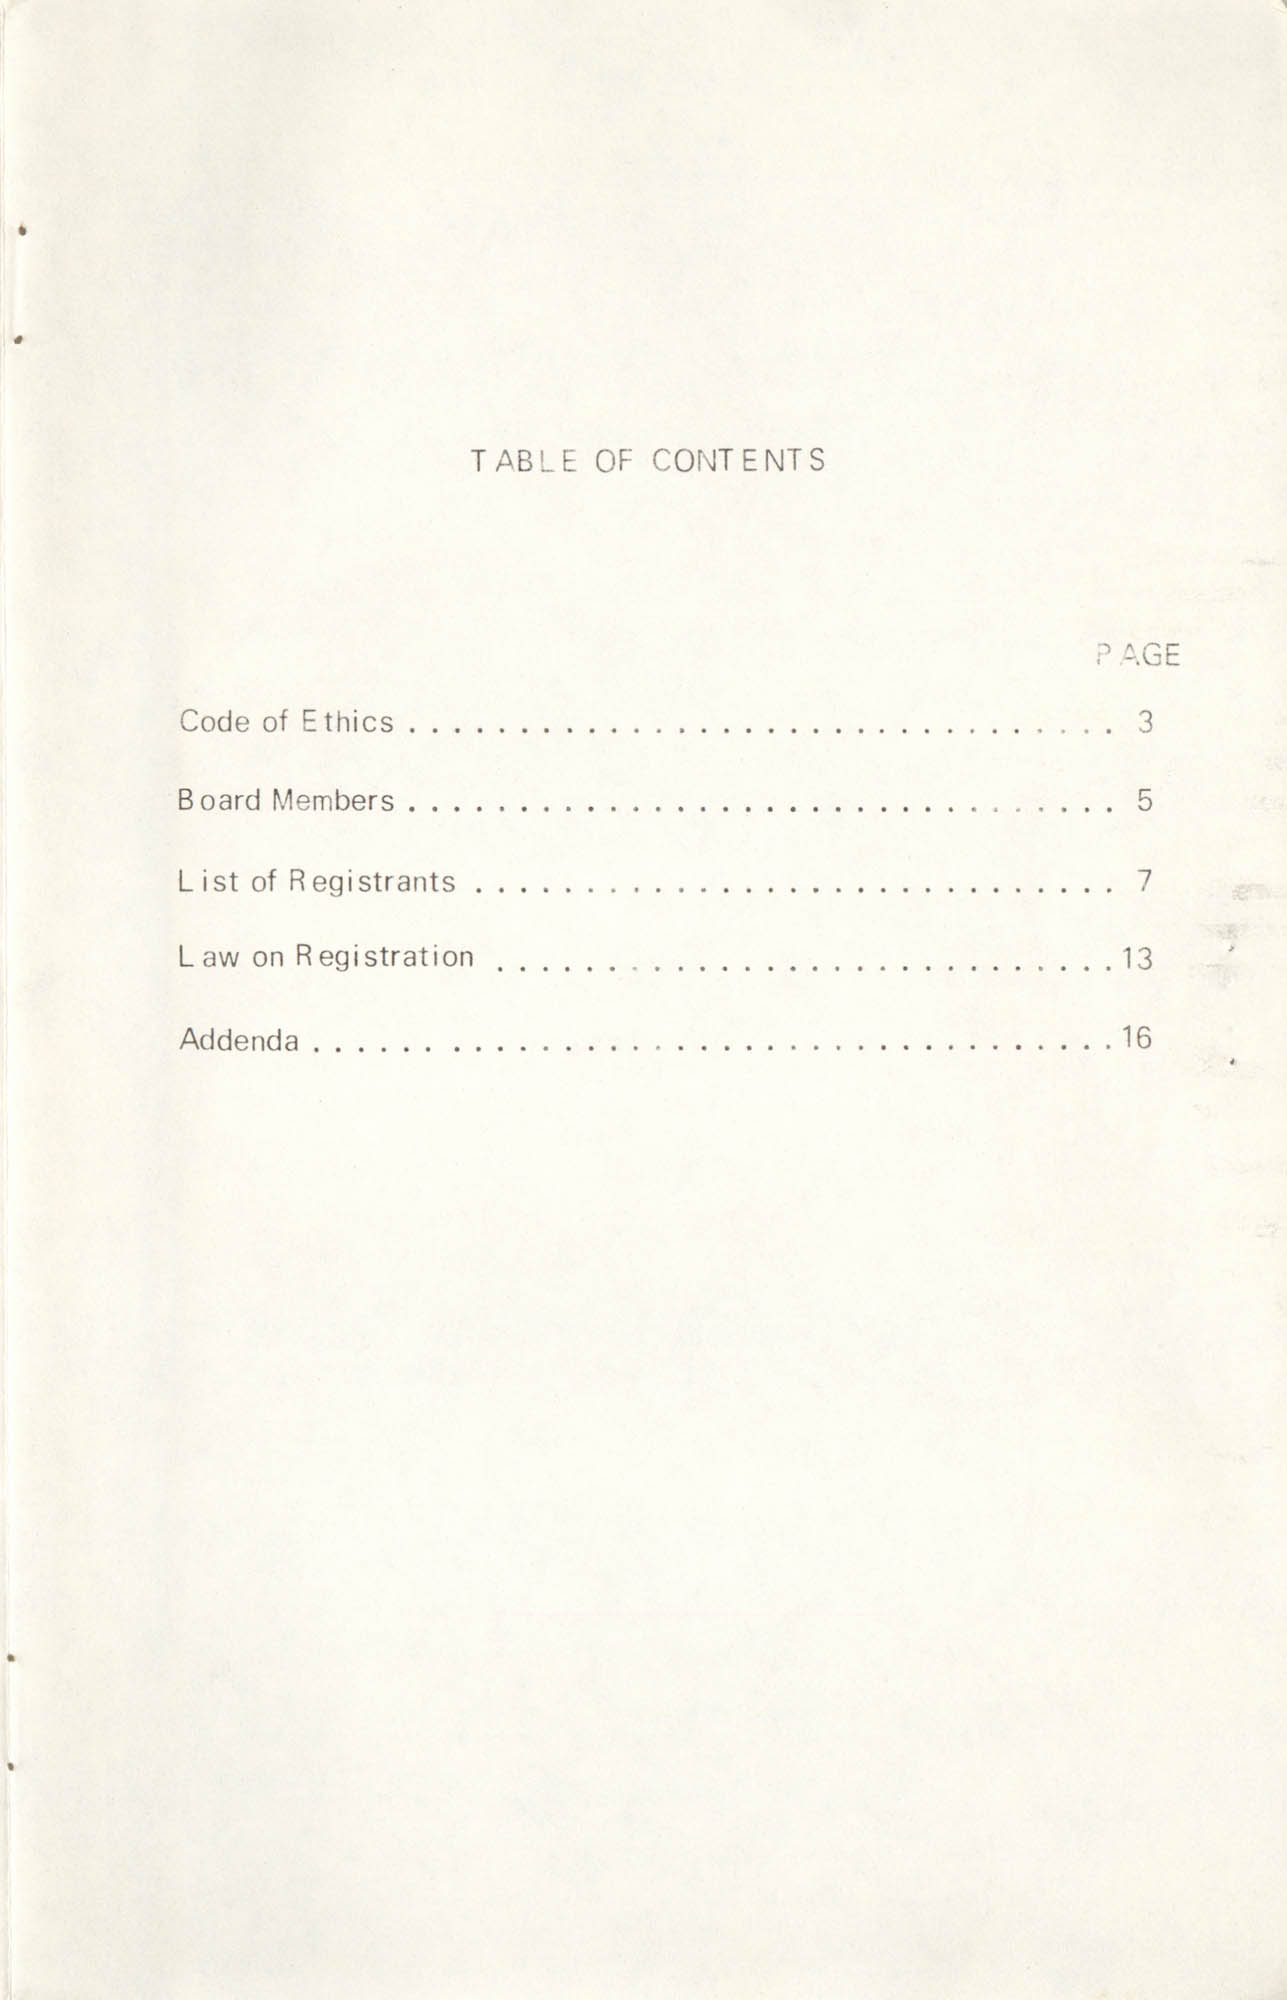 State of South Carolina Directory of Registered Social Workers, 1972, Table of Contents